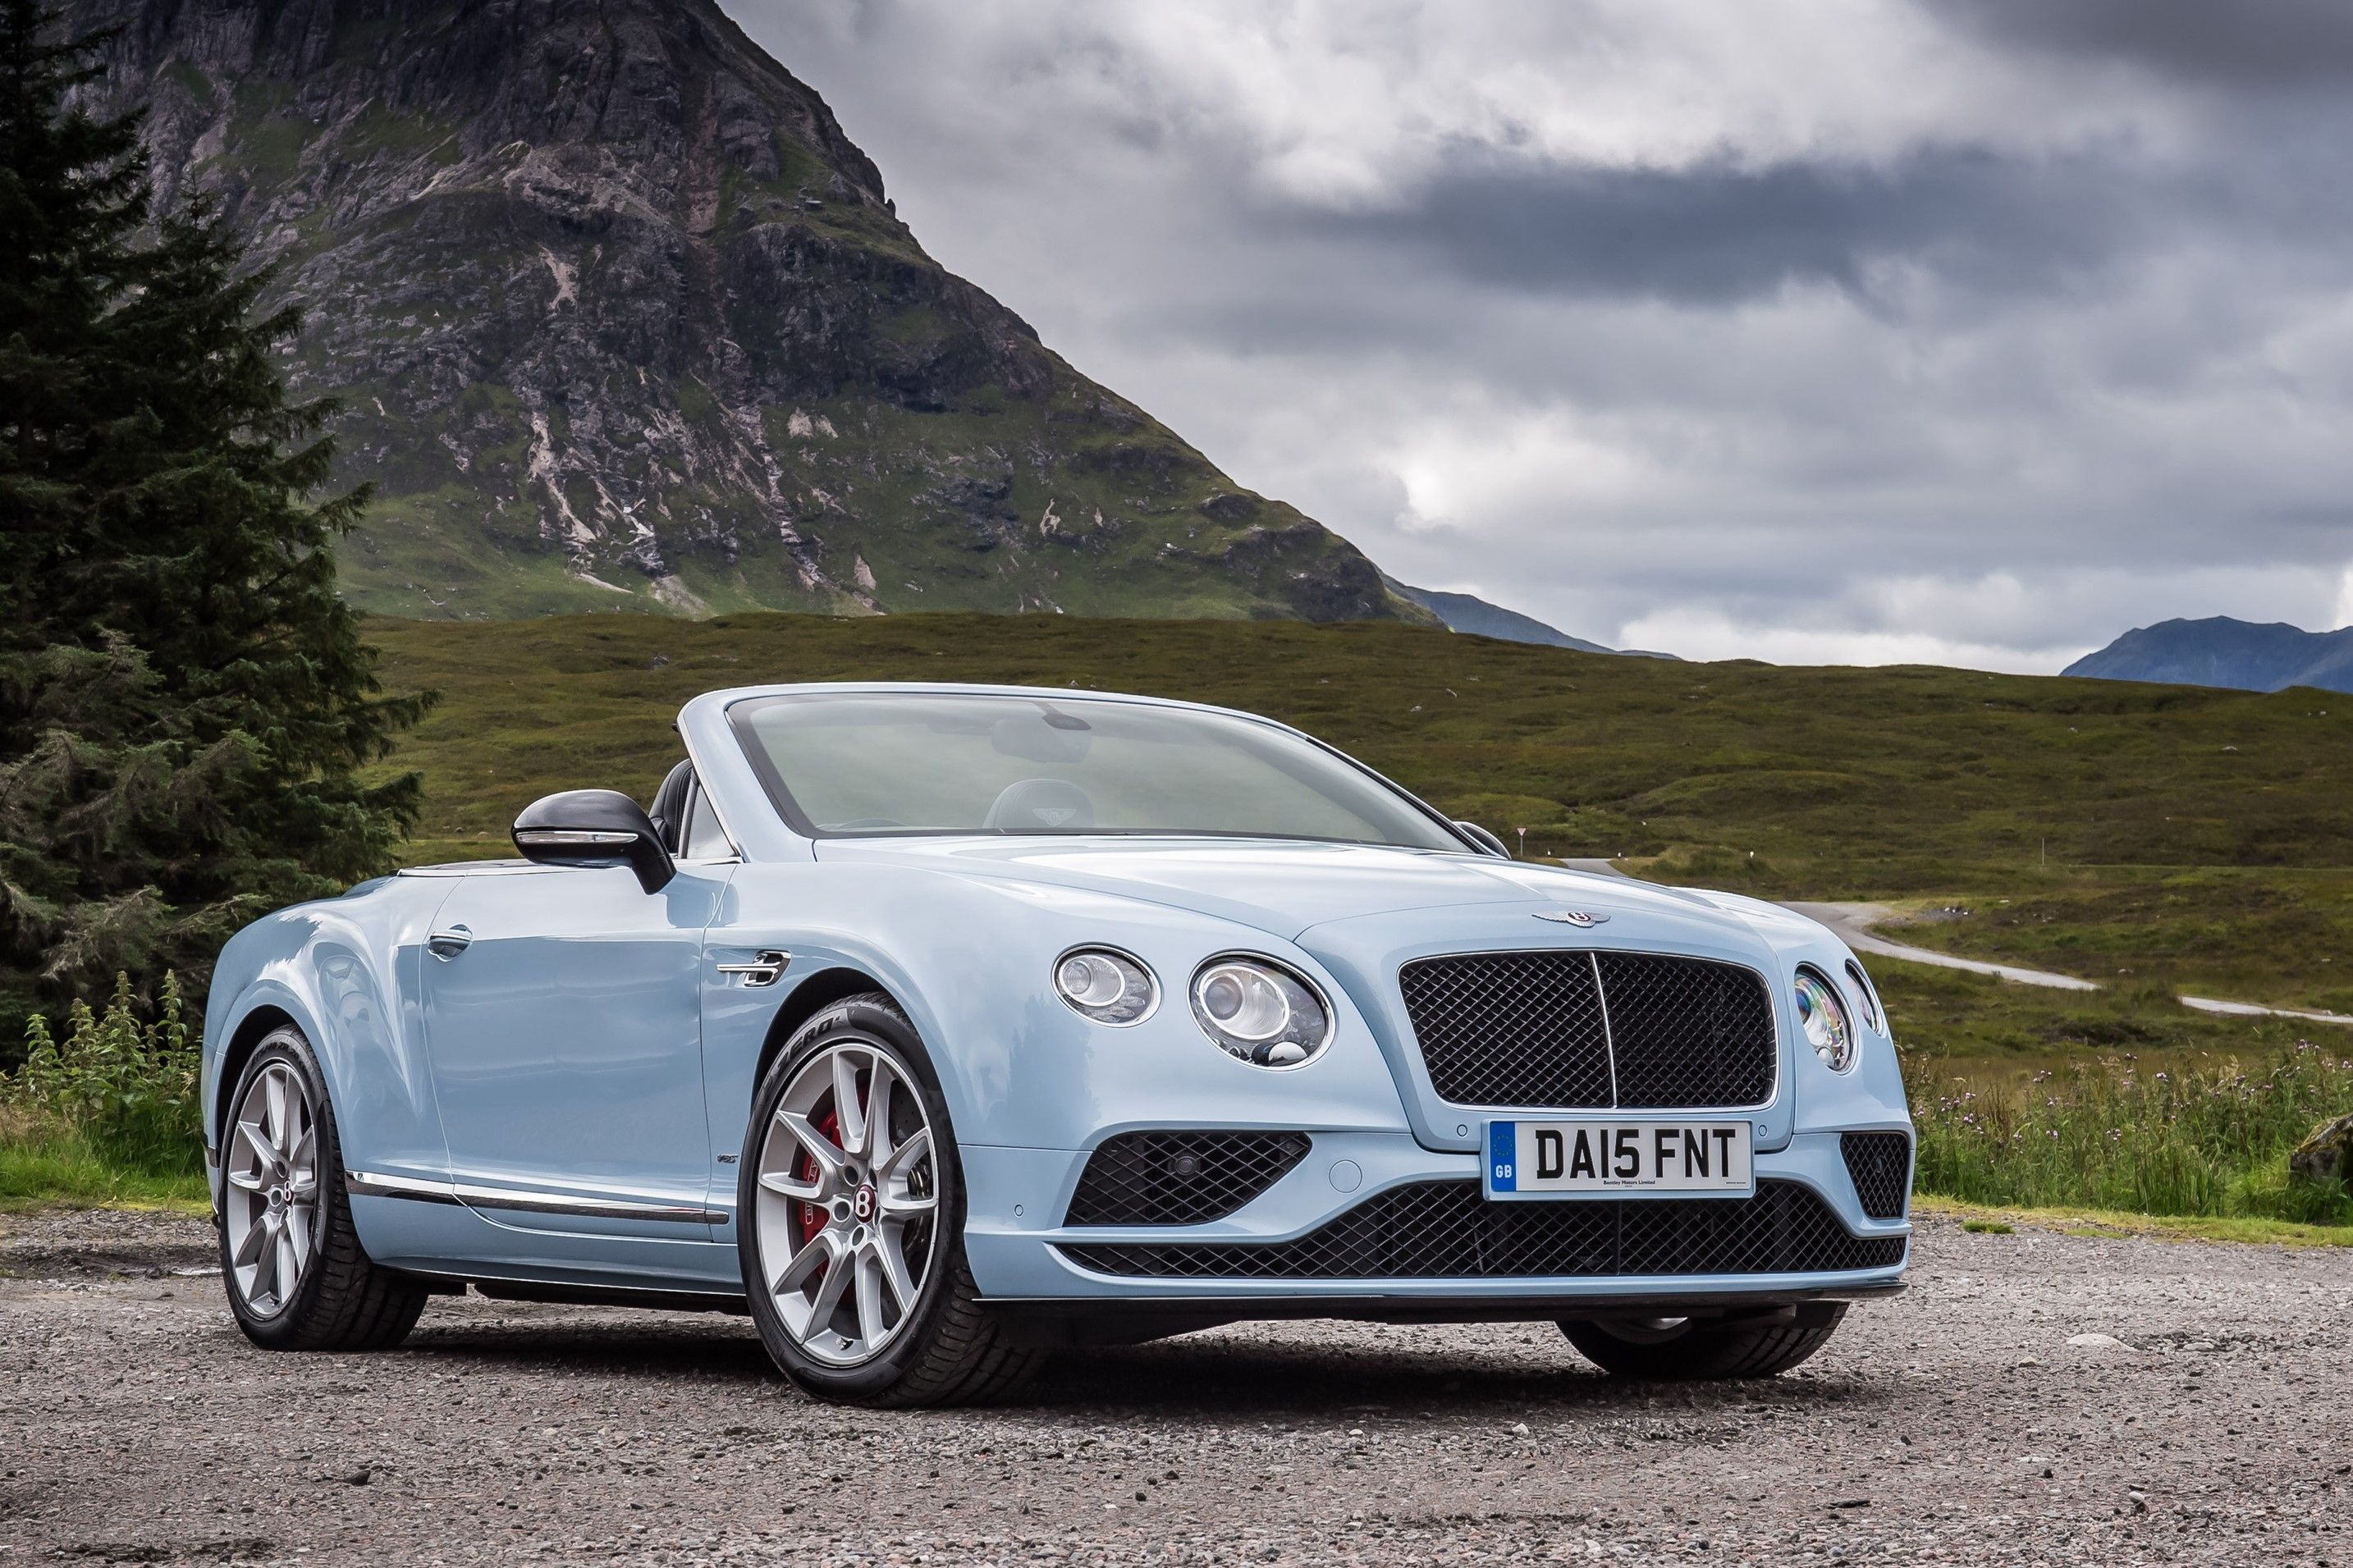 convertible continental wide author wallpapers bentley supersports tags bjorn hd wallpaper nieborg car